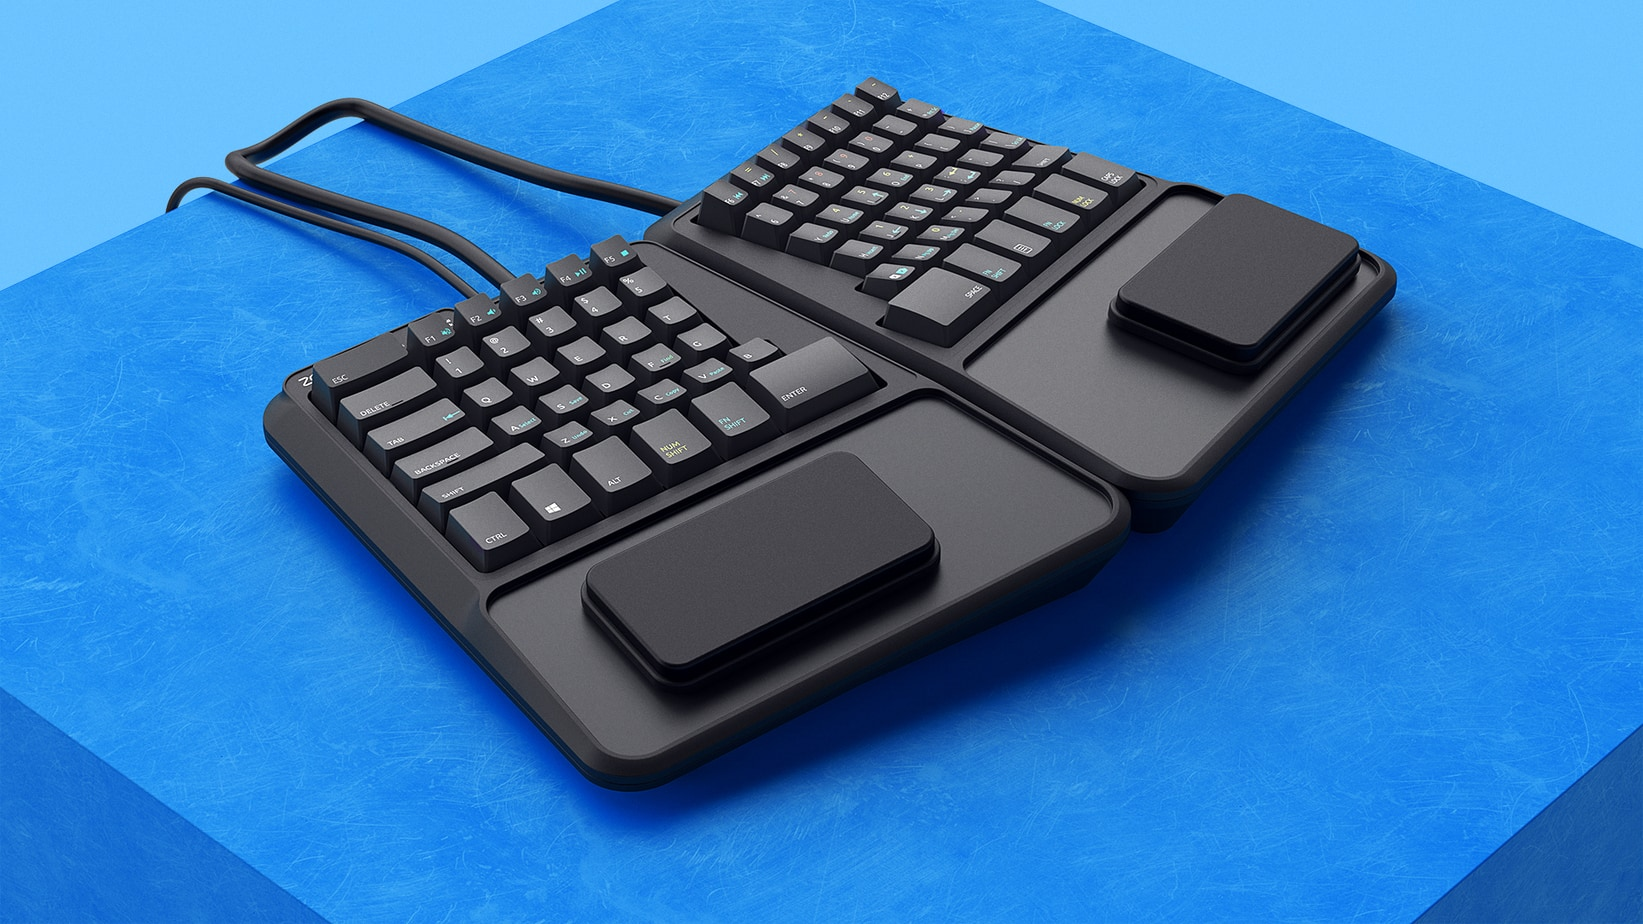 Rendering of a keyboard